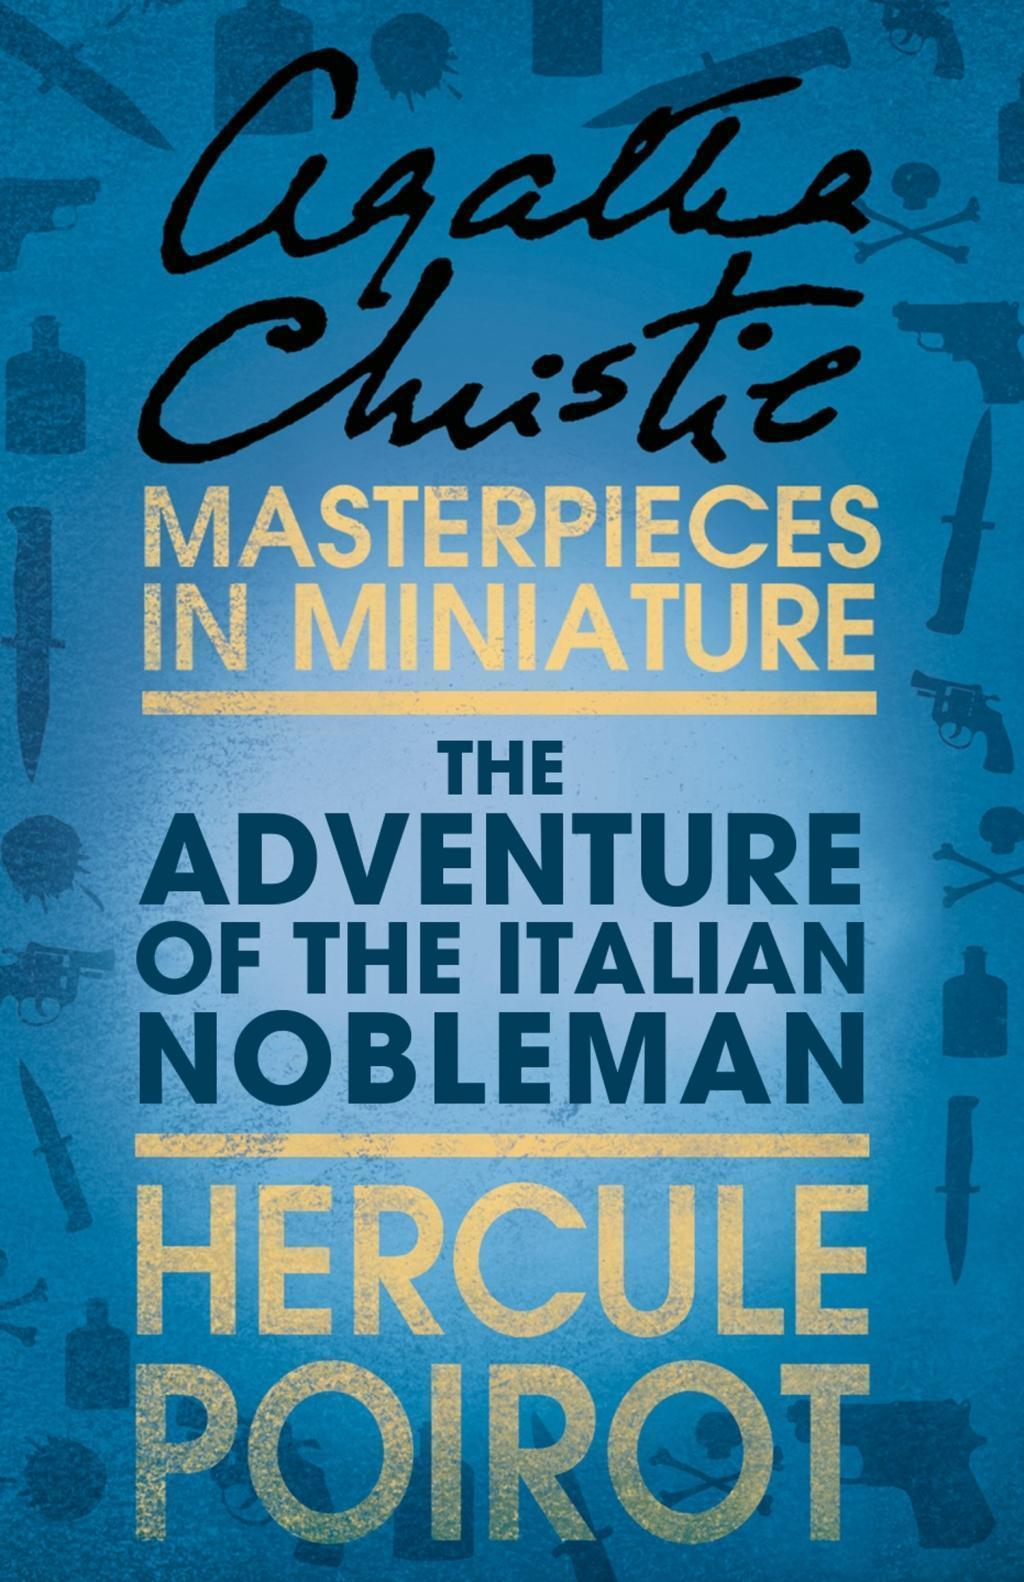 The Adventure of the Italian Nobleman: A Hercule Poirot Short Story